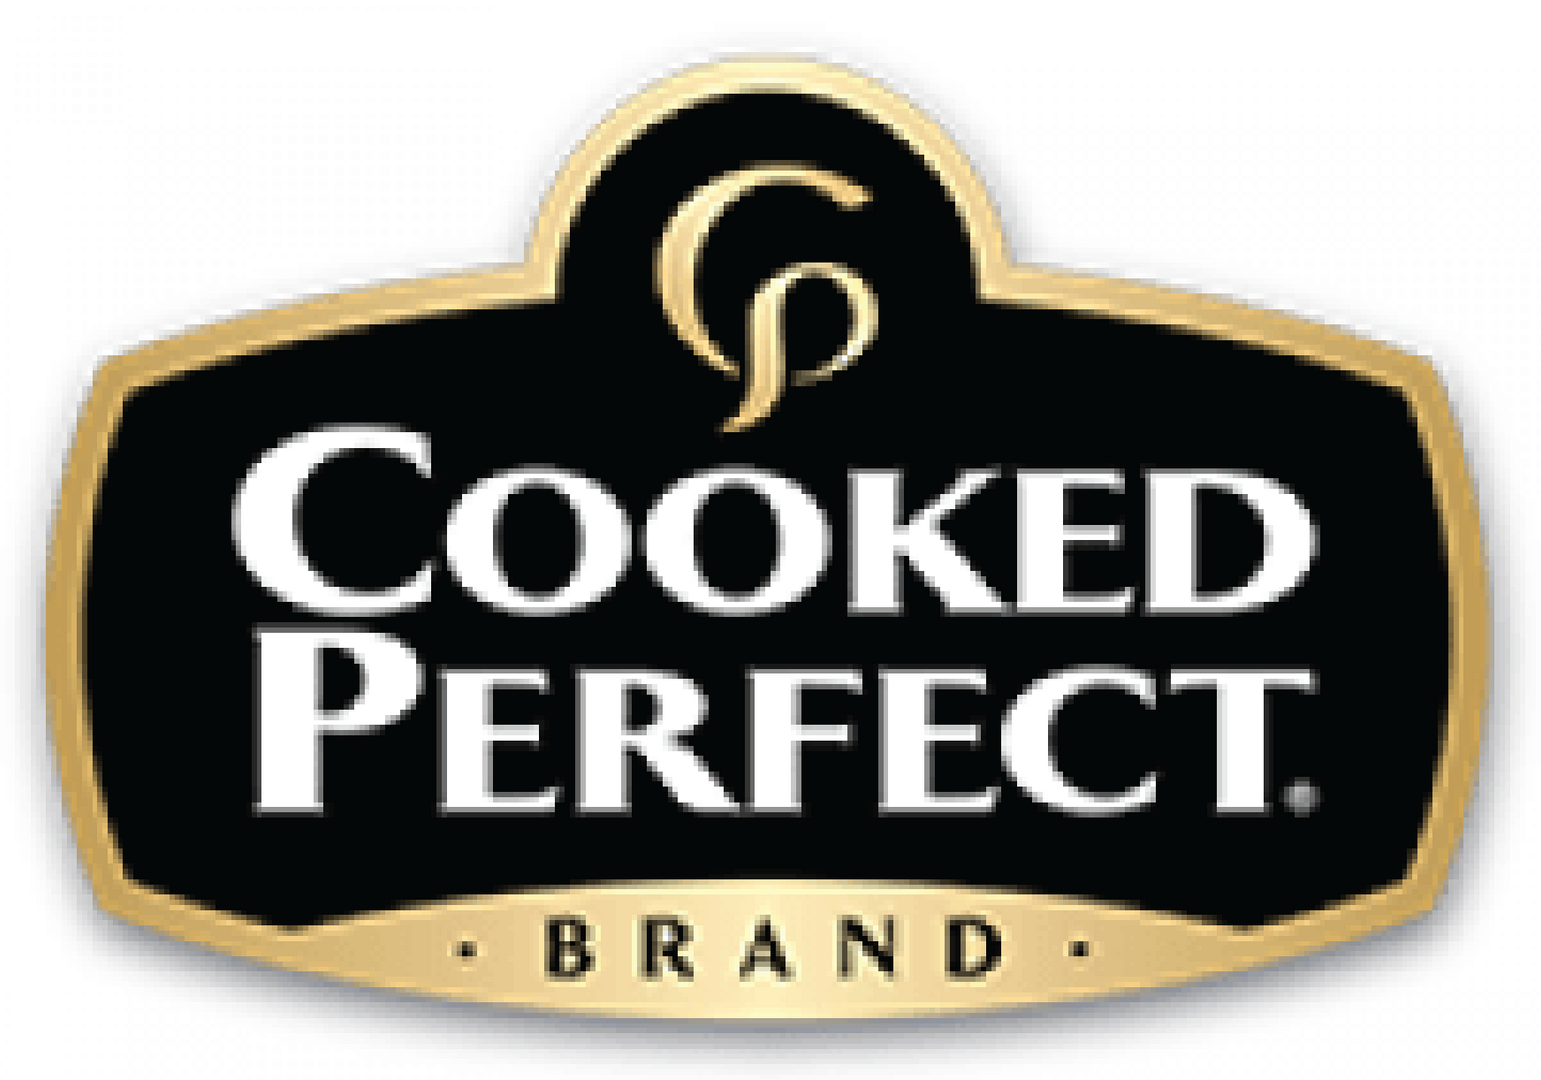 cropped-cooked-perfect-header-logo-4.png